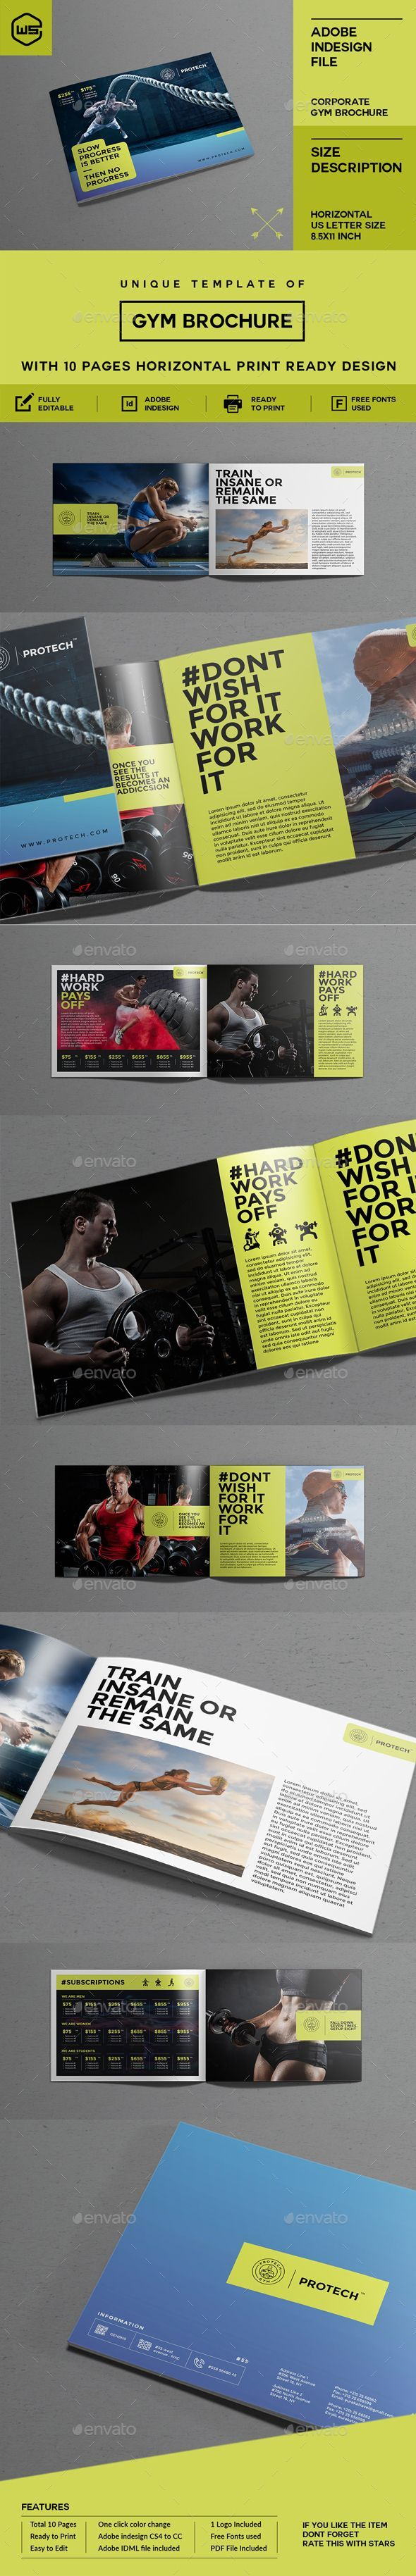 Gym  Fitness Brochure  Jpg Image Gym Brochure Brochure